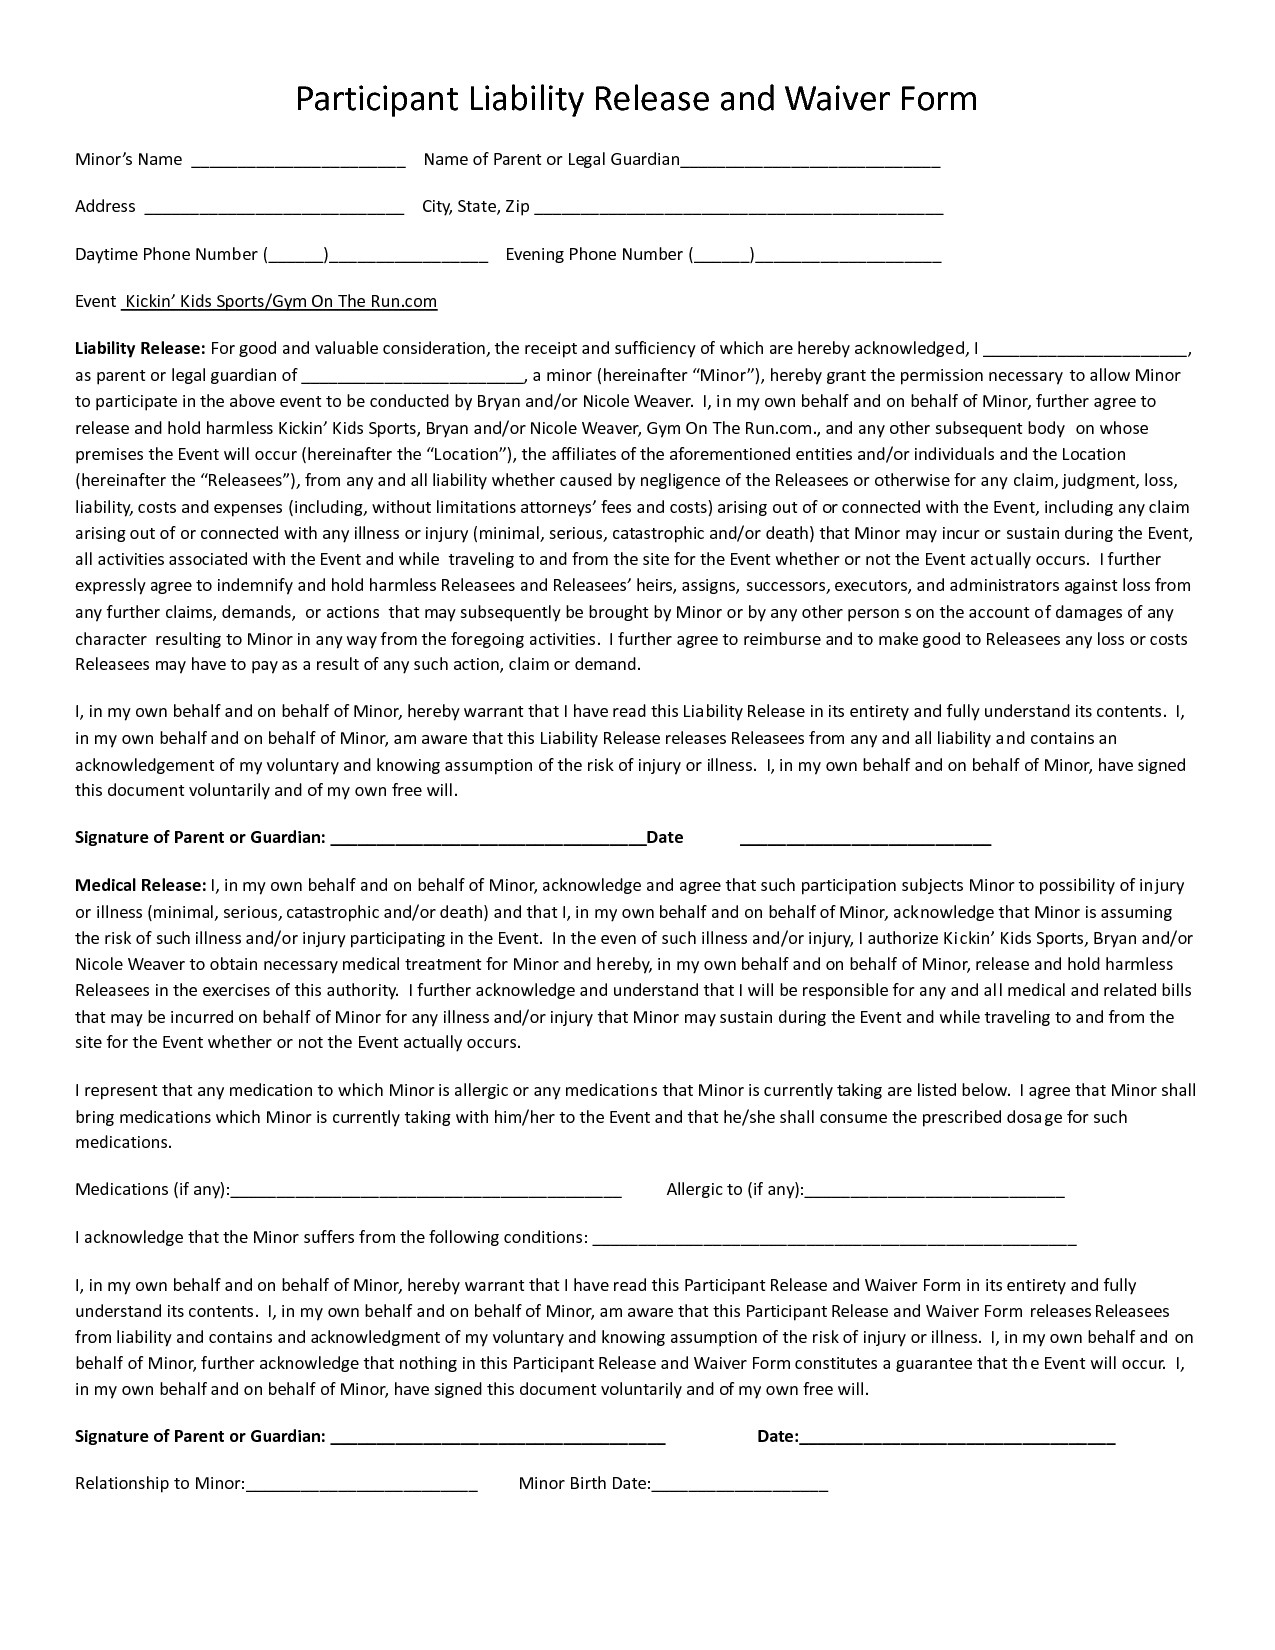 Waiver form Template for Sports 24 Of Sports Liability Waiver form Template